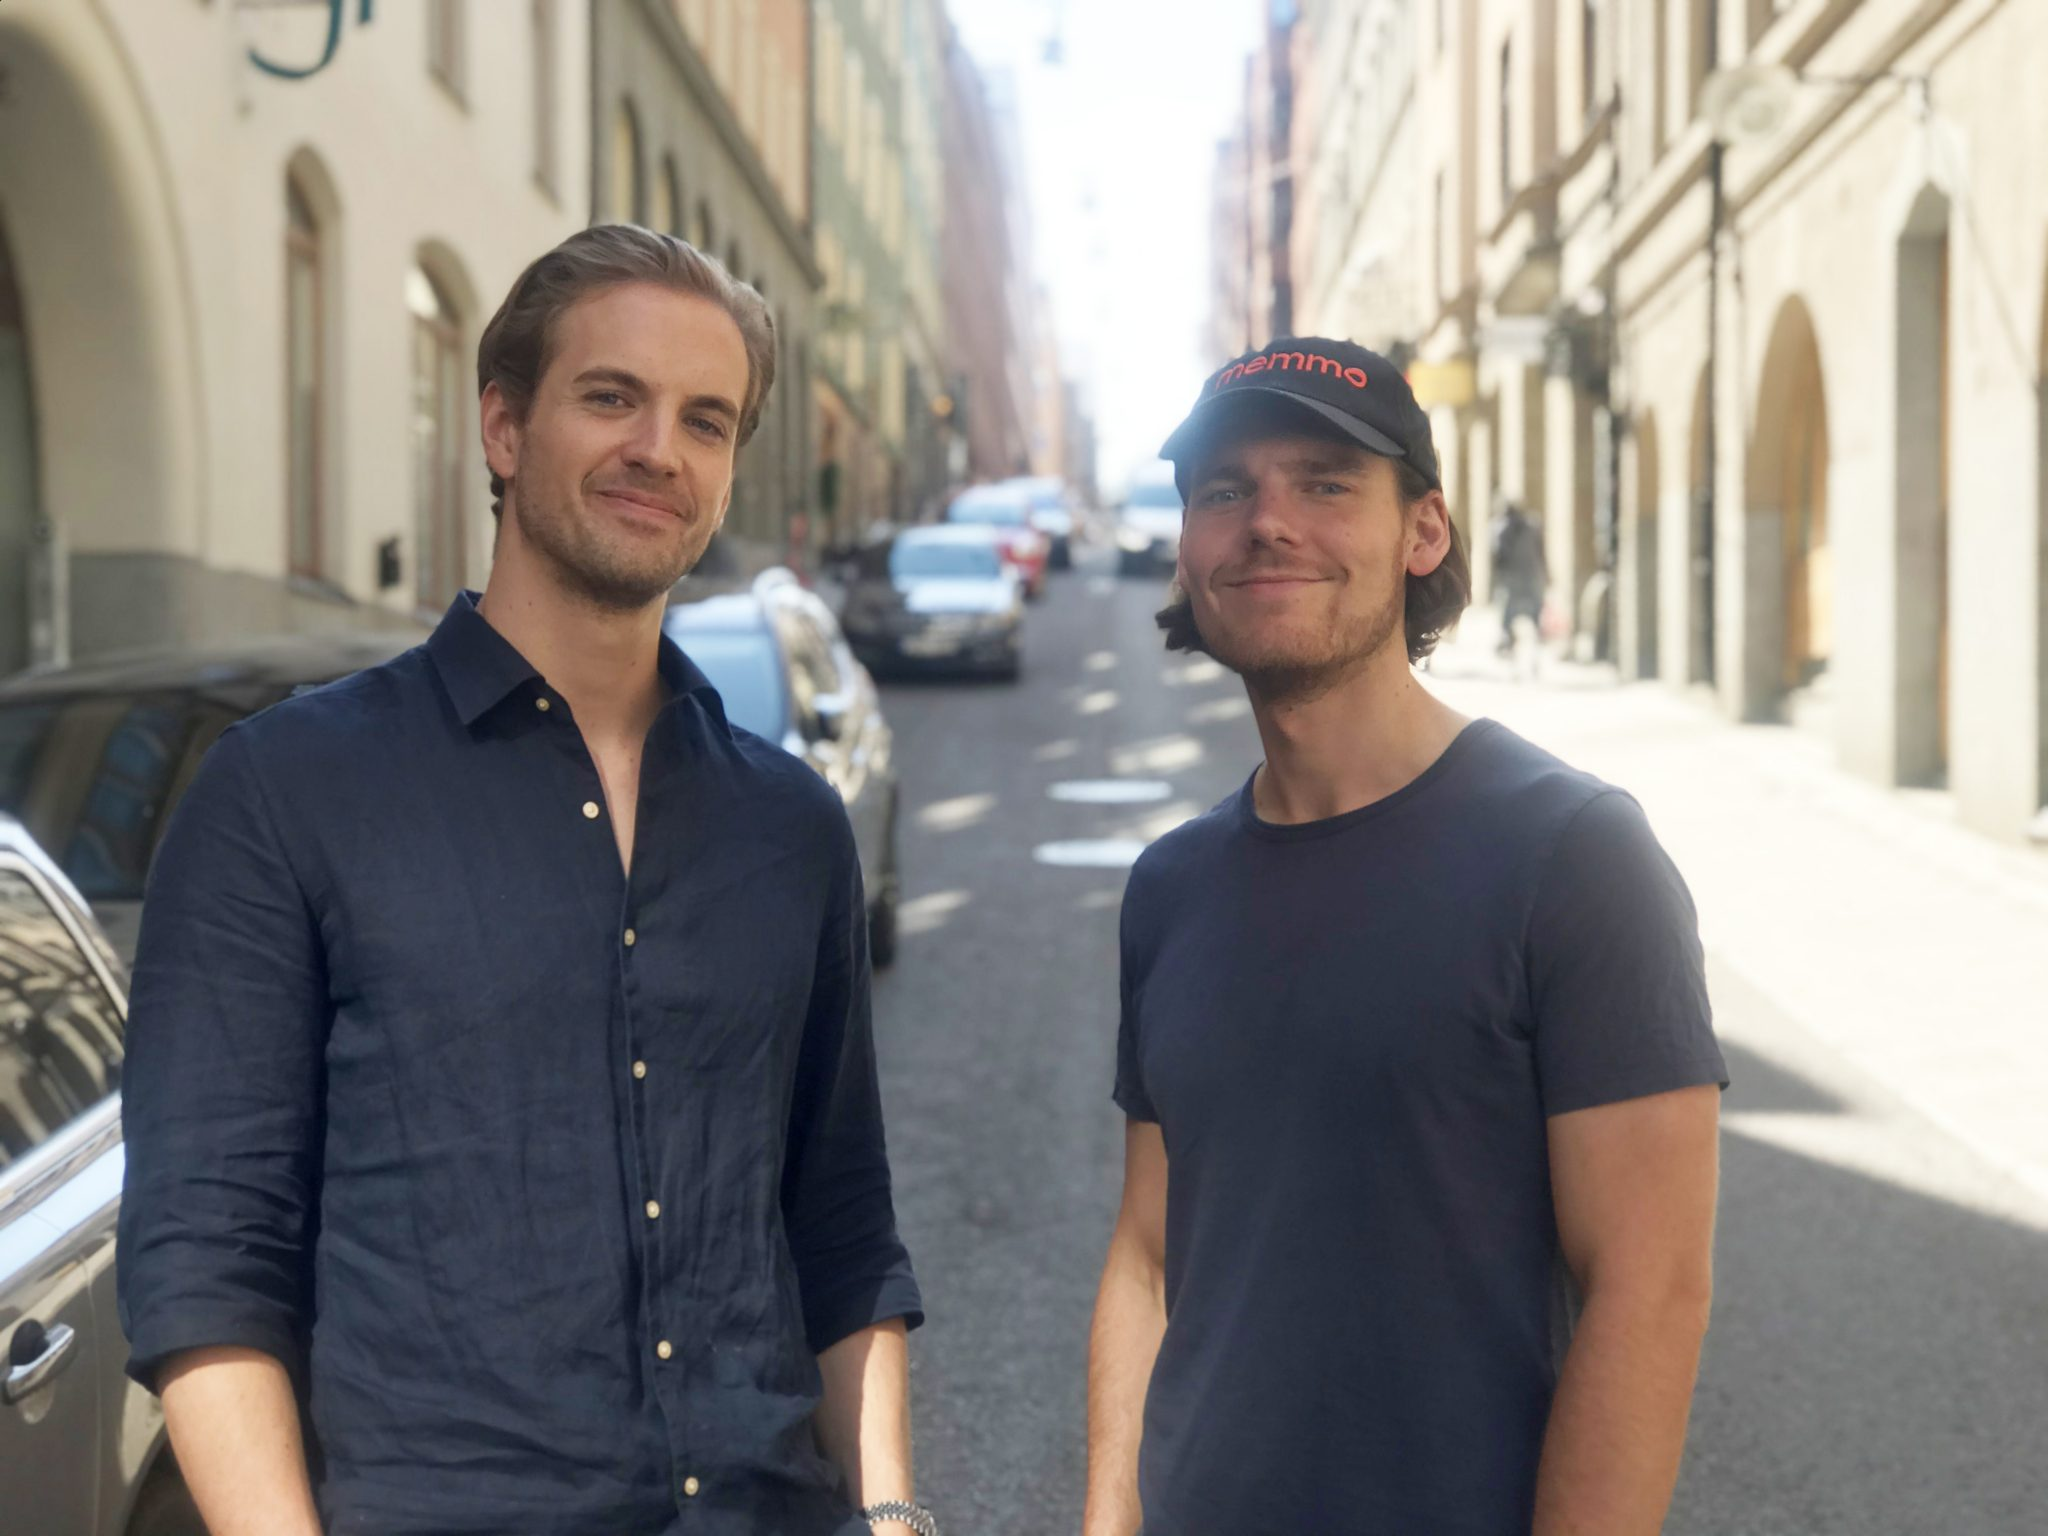 Memmo founders Gustaf Lundberg Toresson and Tobias Bengtsdahl standing next to each other on a street.